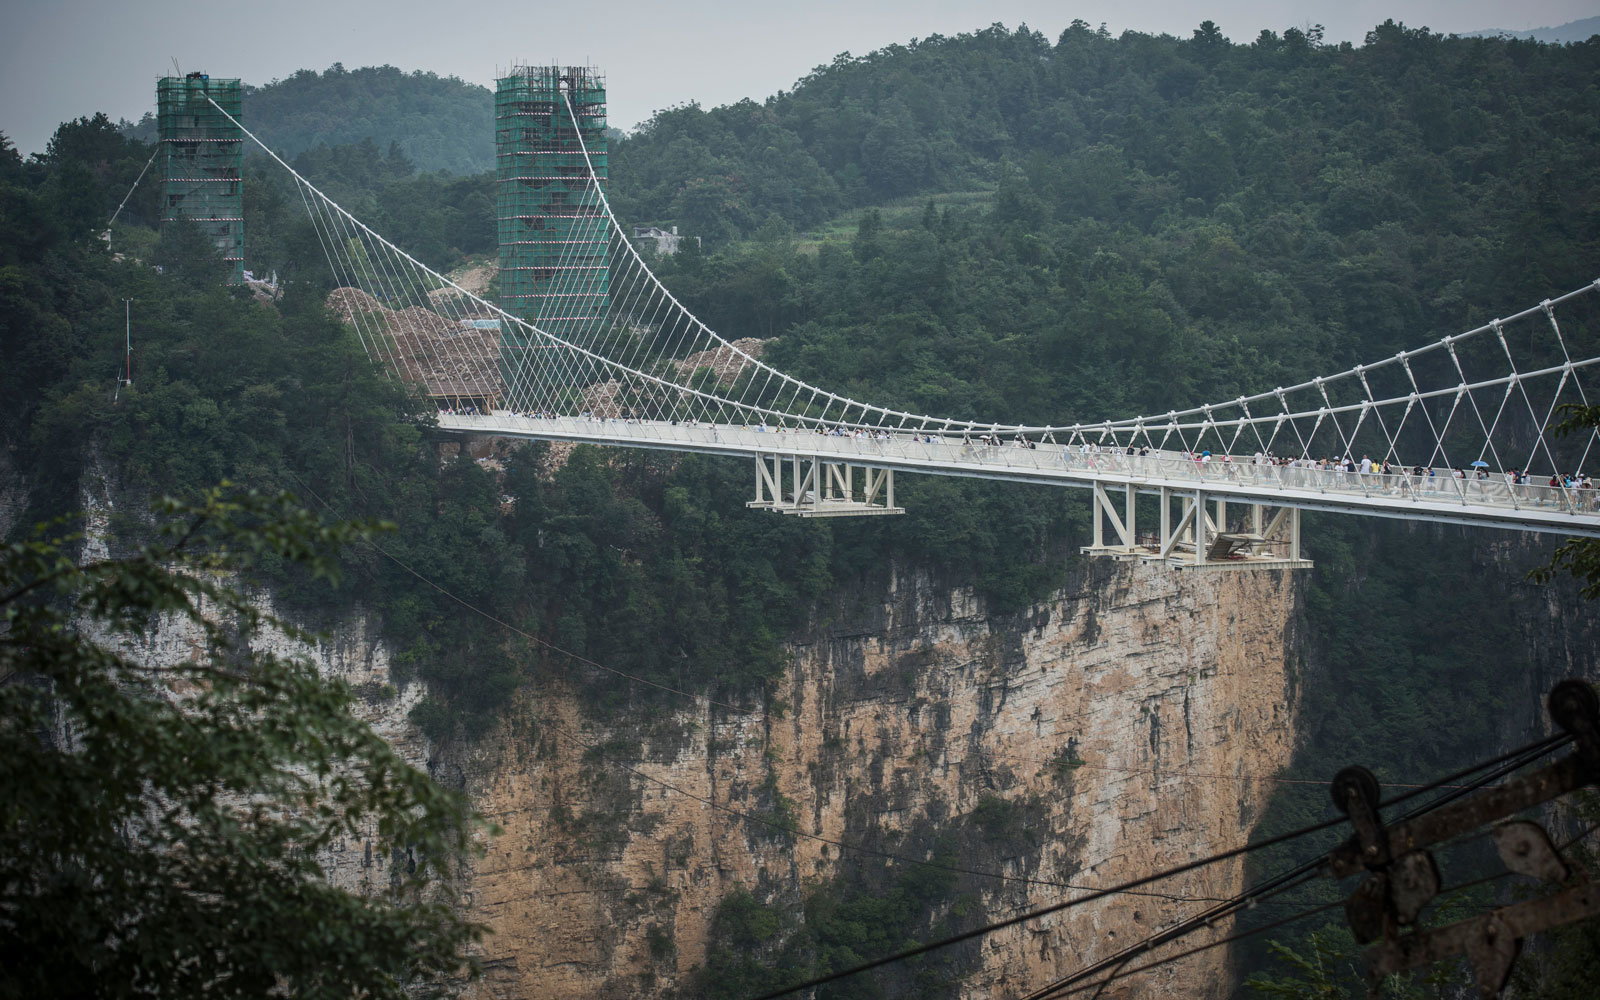 A view of the bridge, in China.